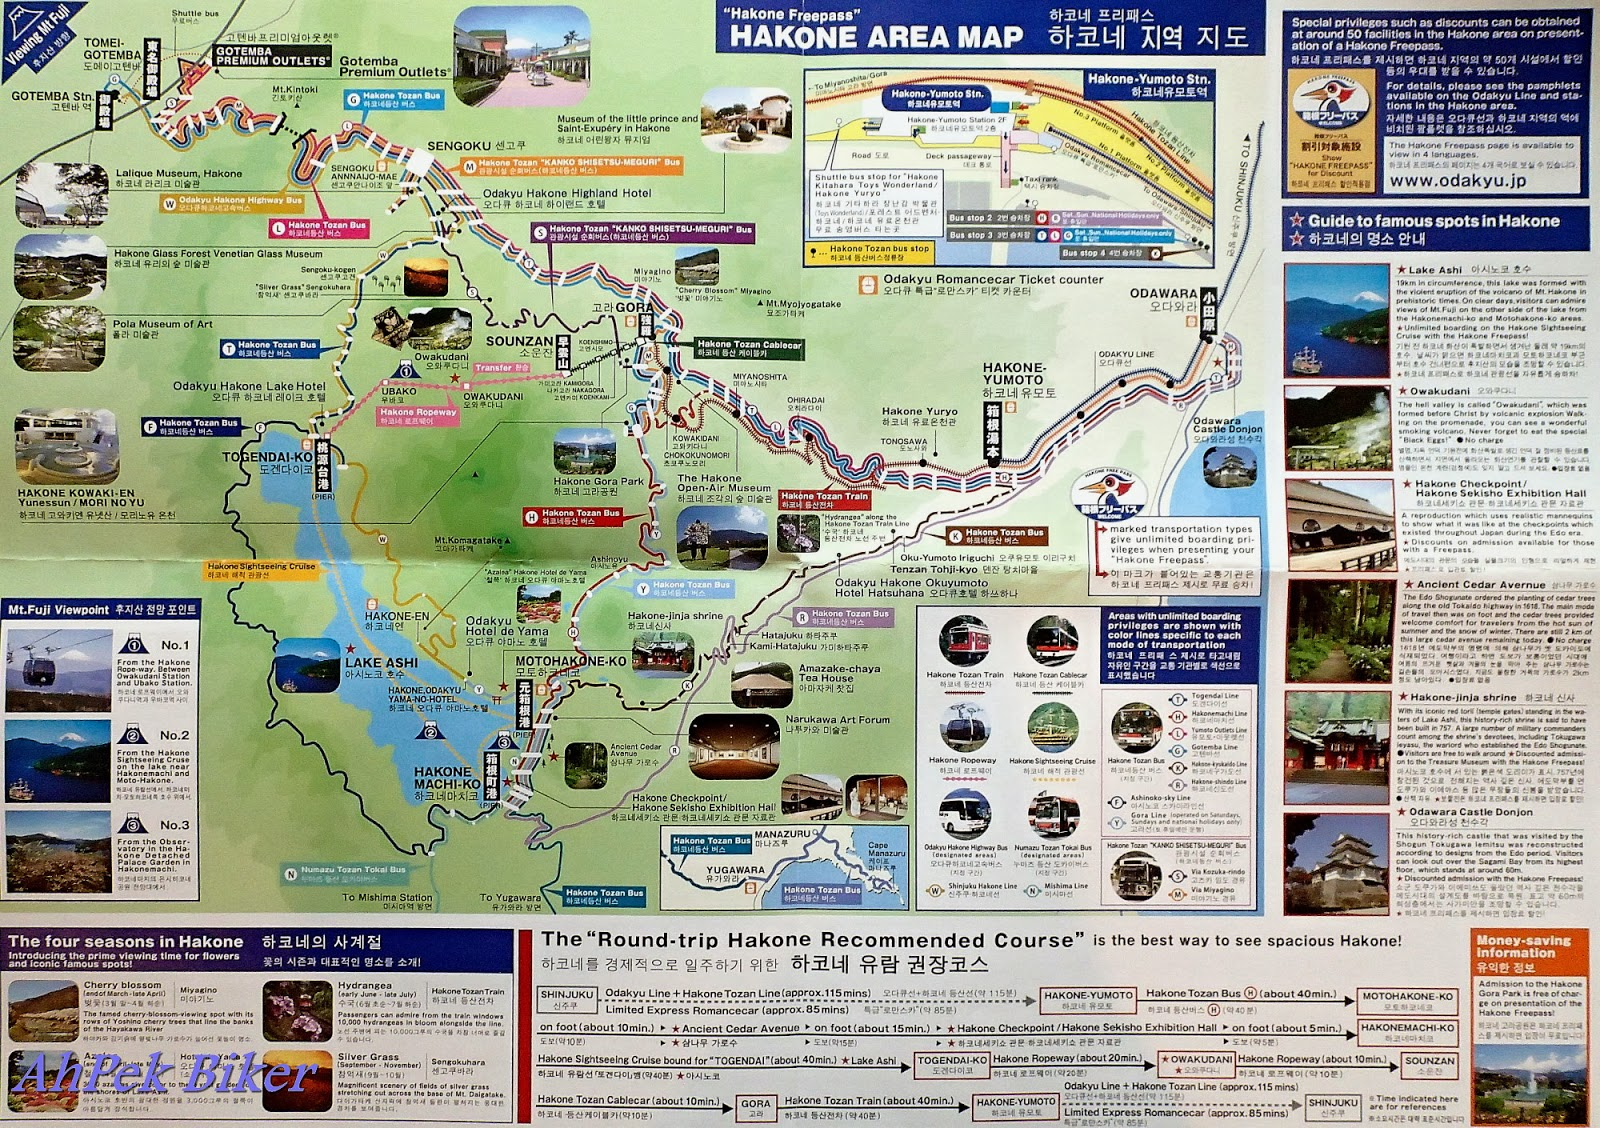 here can be purchased the hakone fee pass which covers for train bus rides from shinjuku station up till one s hotel in hakone